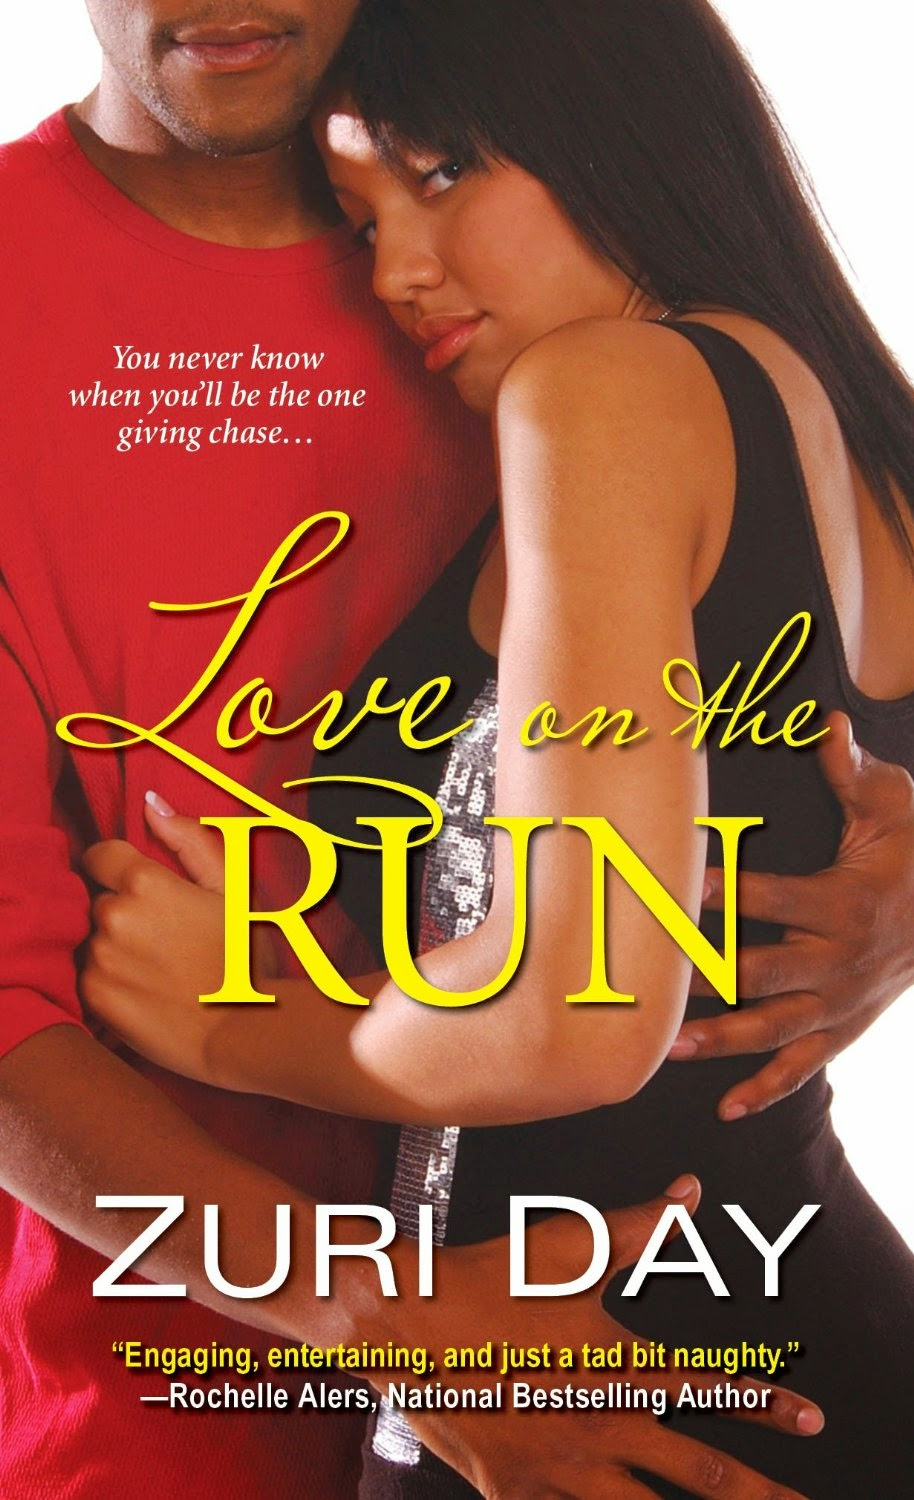 http://discover.halifaxpubliclibraries.ca/?q=title:%22love%20on%20the%20run%22day